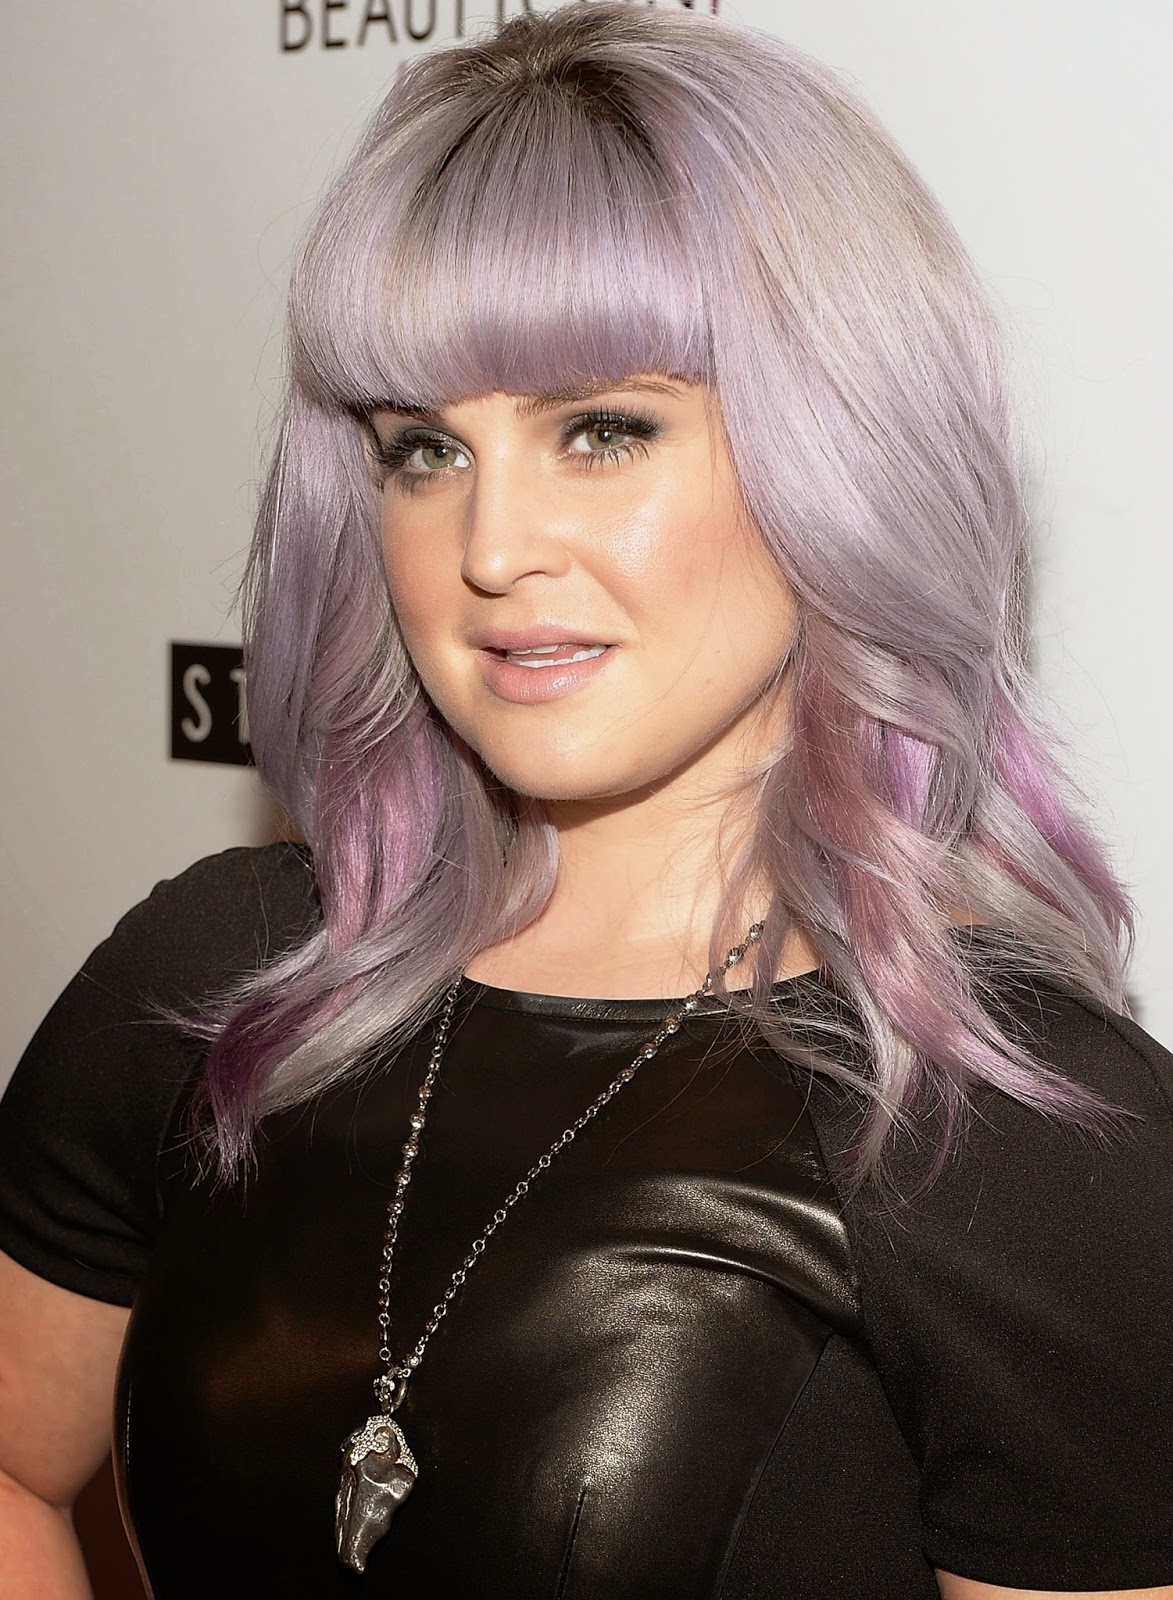 Naked Pictures Of Kelly Osbourne